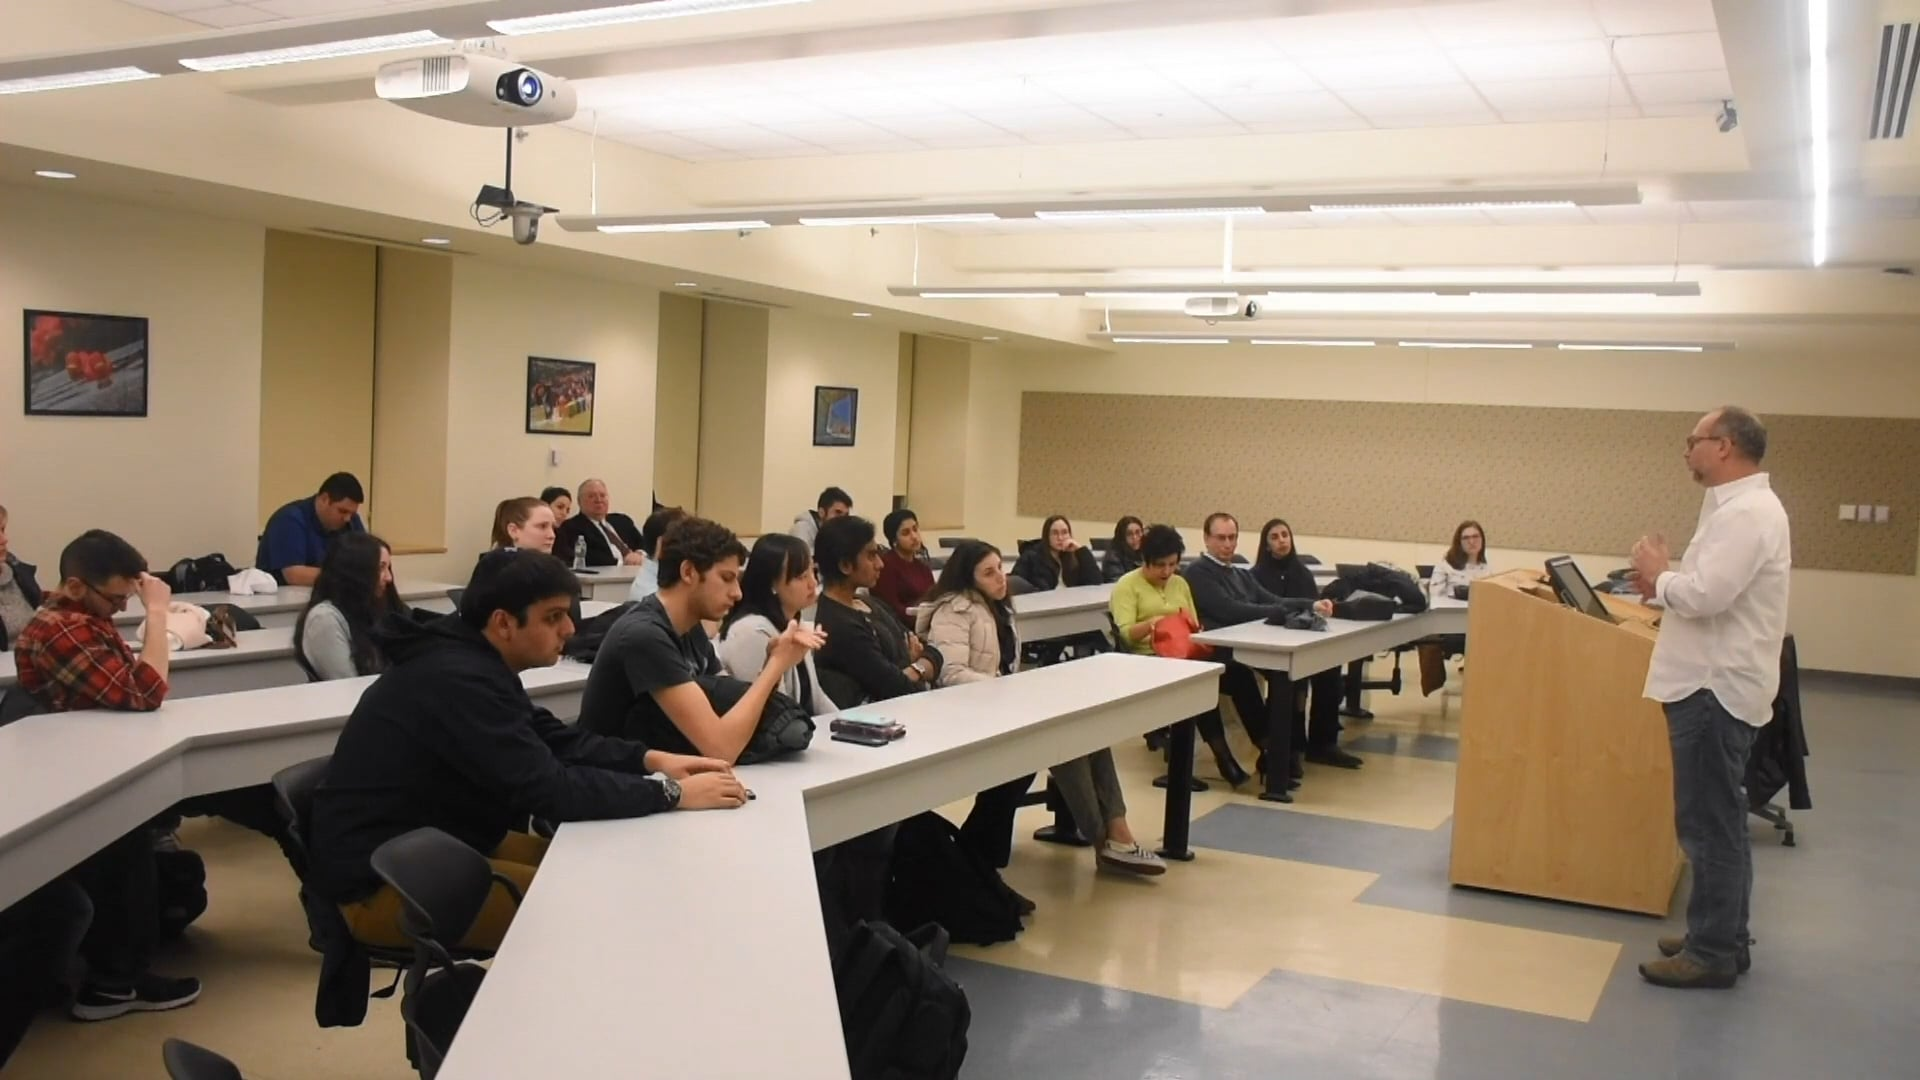 Stony Brook News: Refugee Savior Gives Lecture